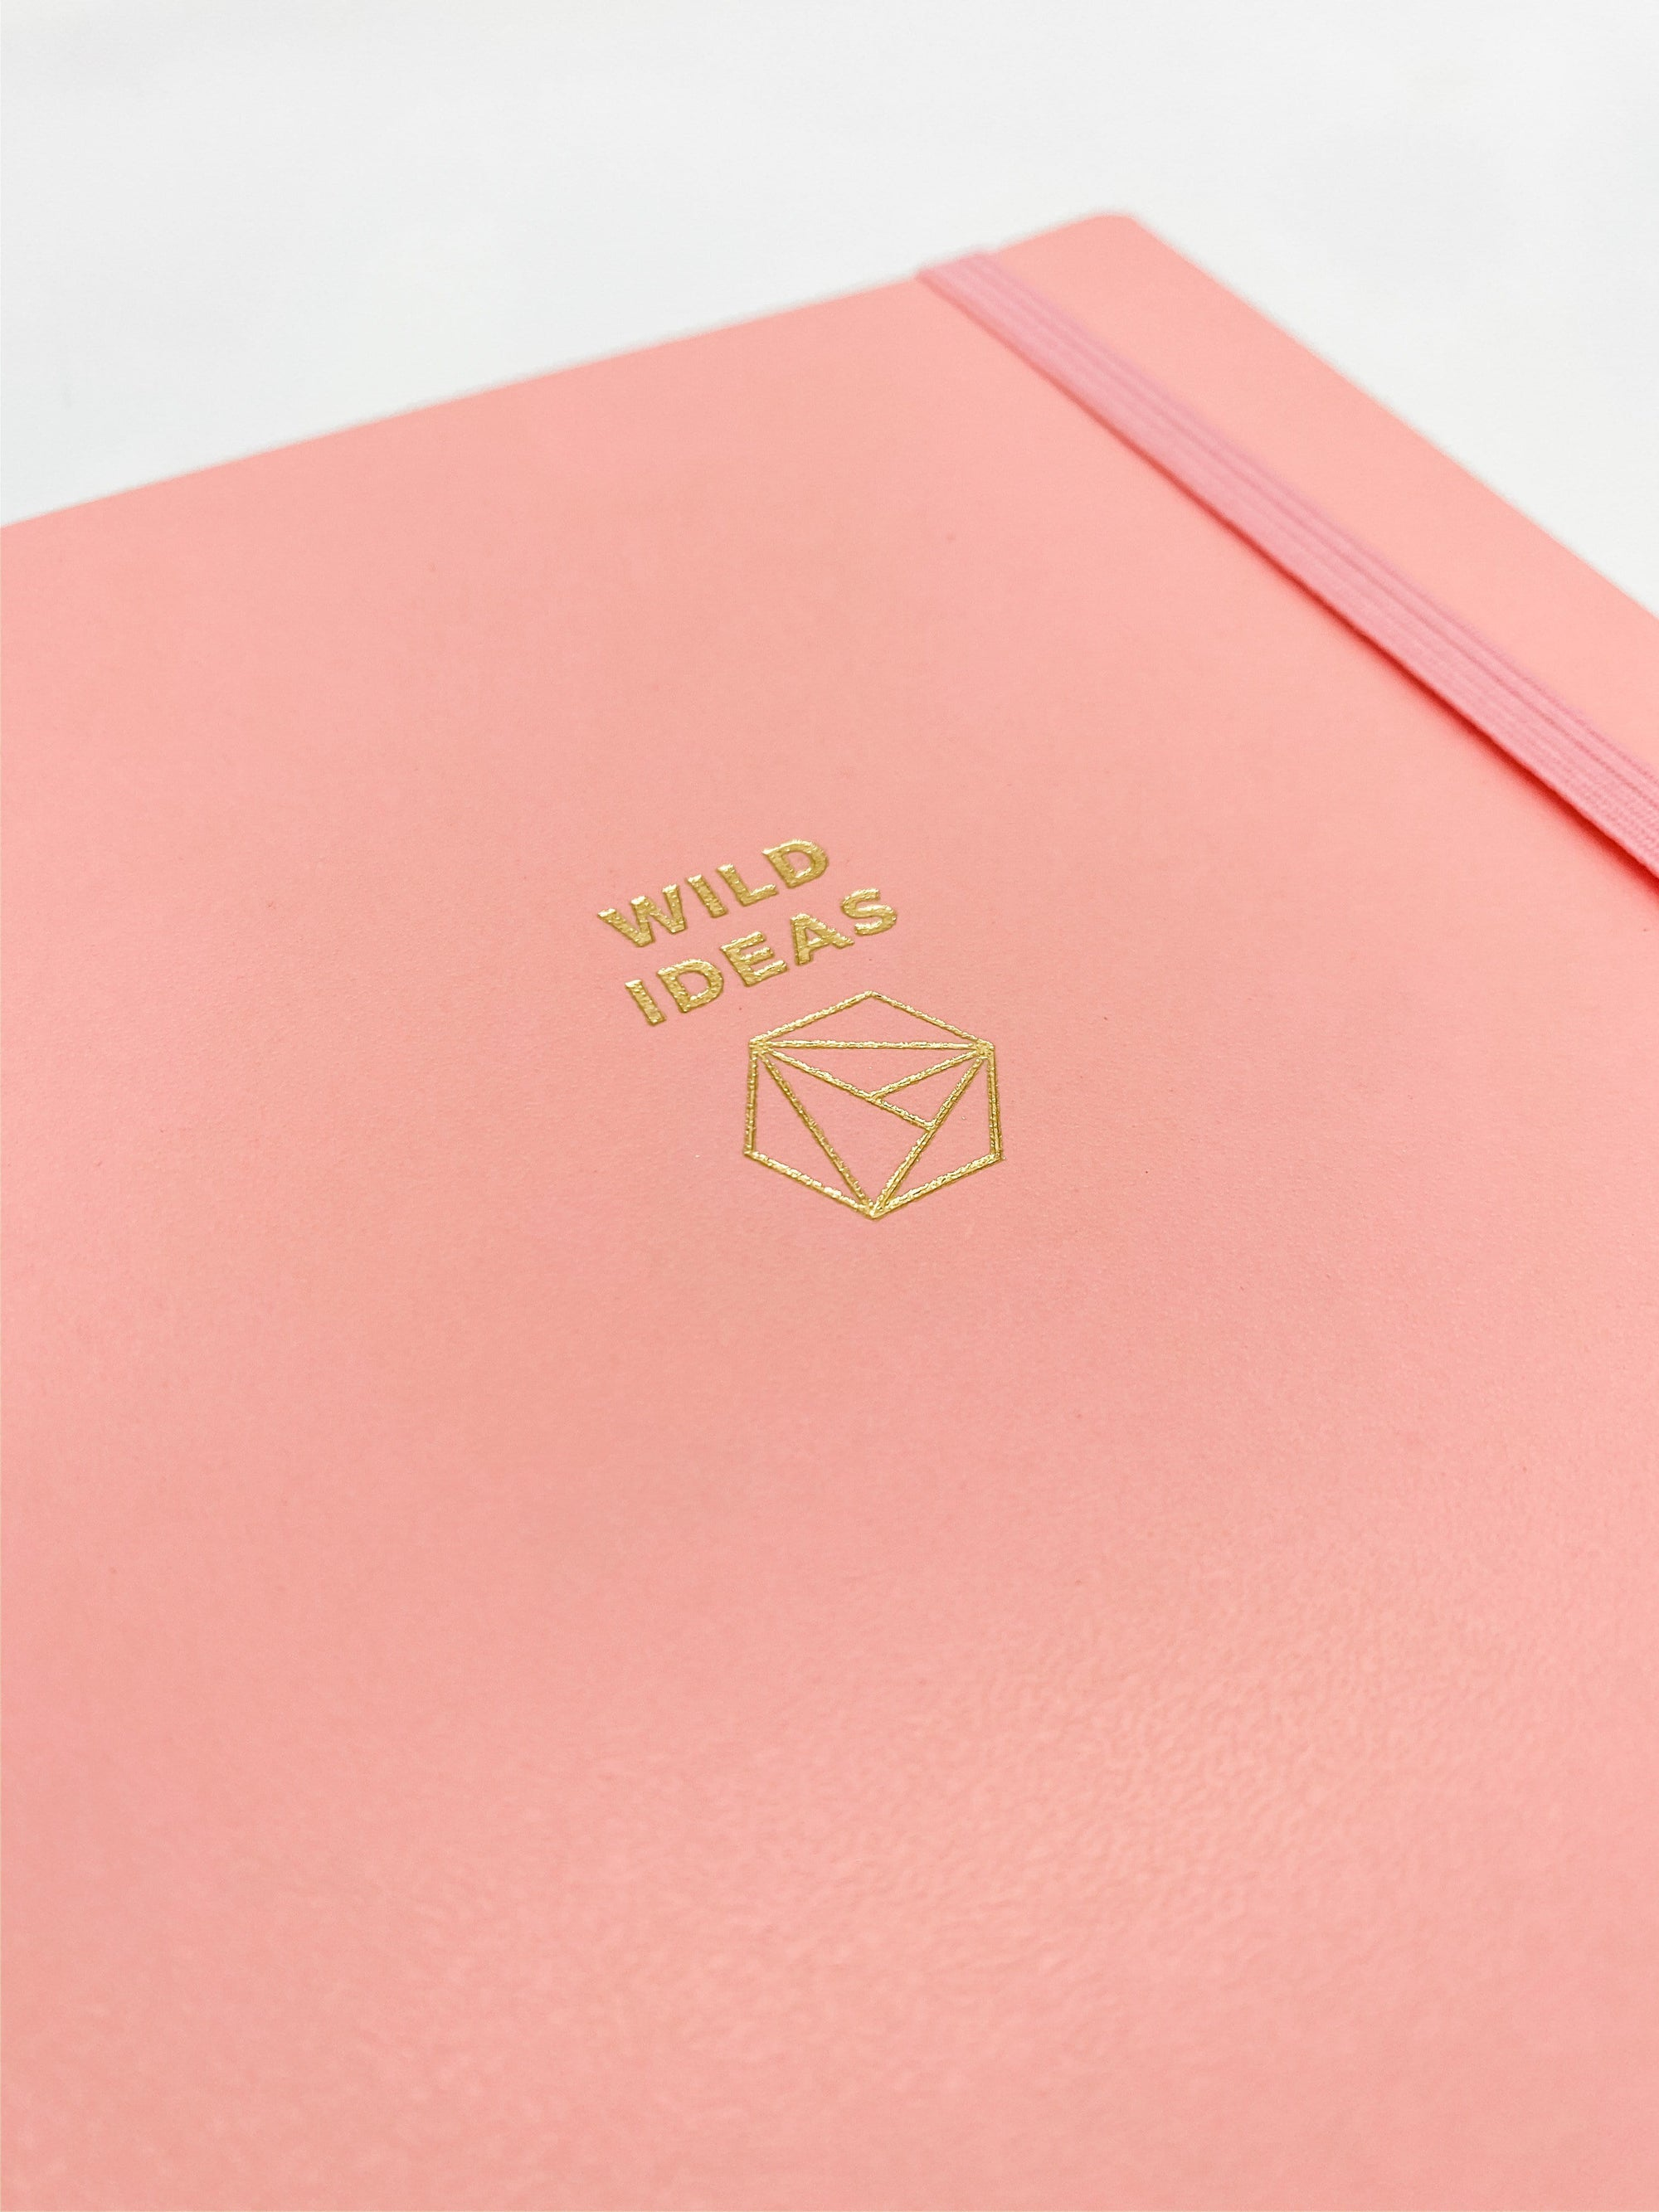 Wild Ideas Pink Spiralbound Lined Journal